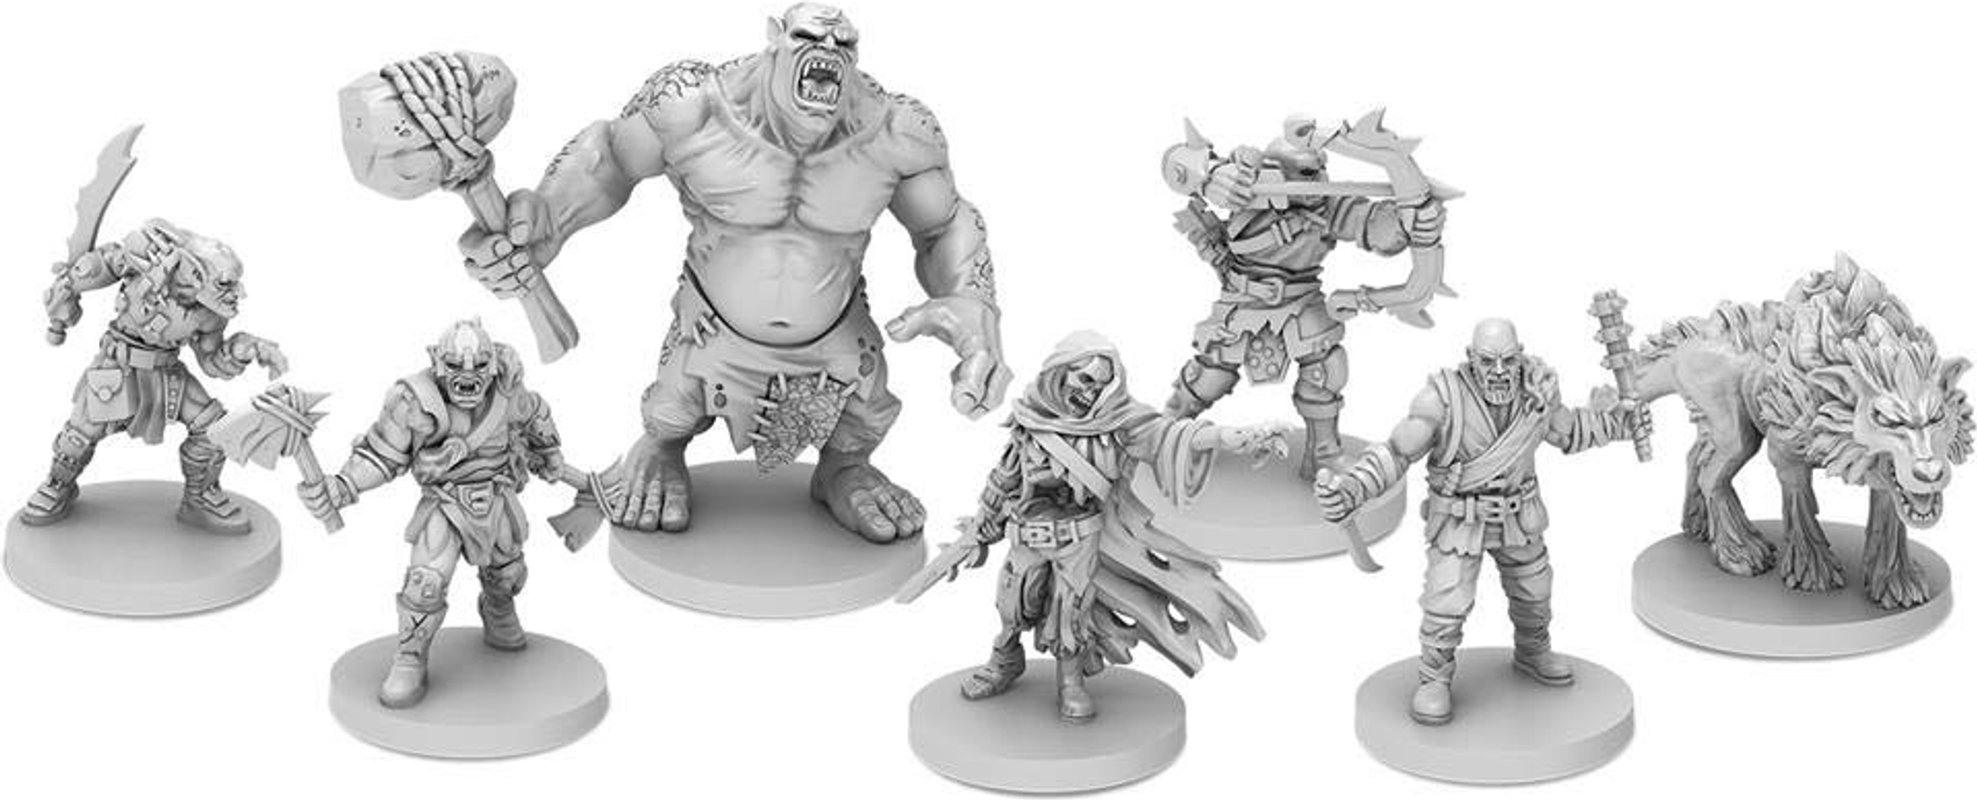 The Lord of the Rings: Journeys in Middle-earth miniatures